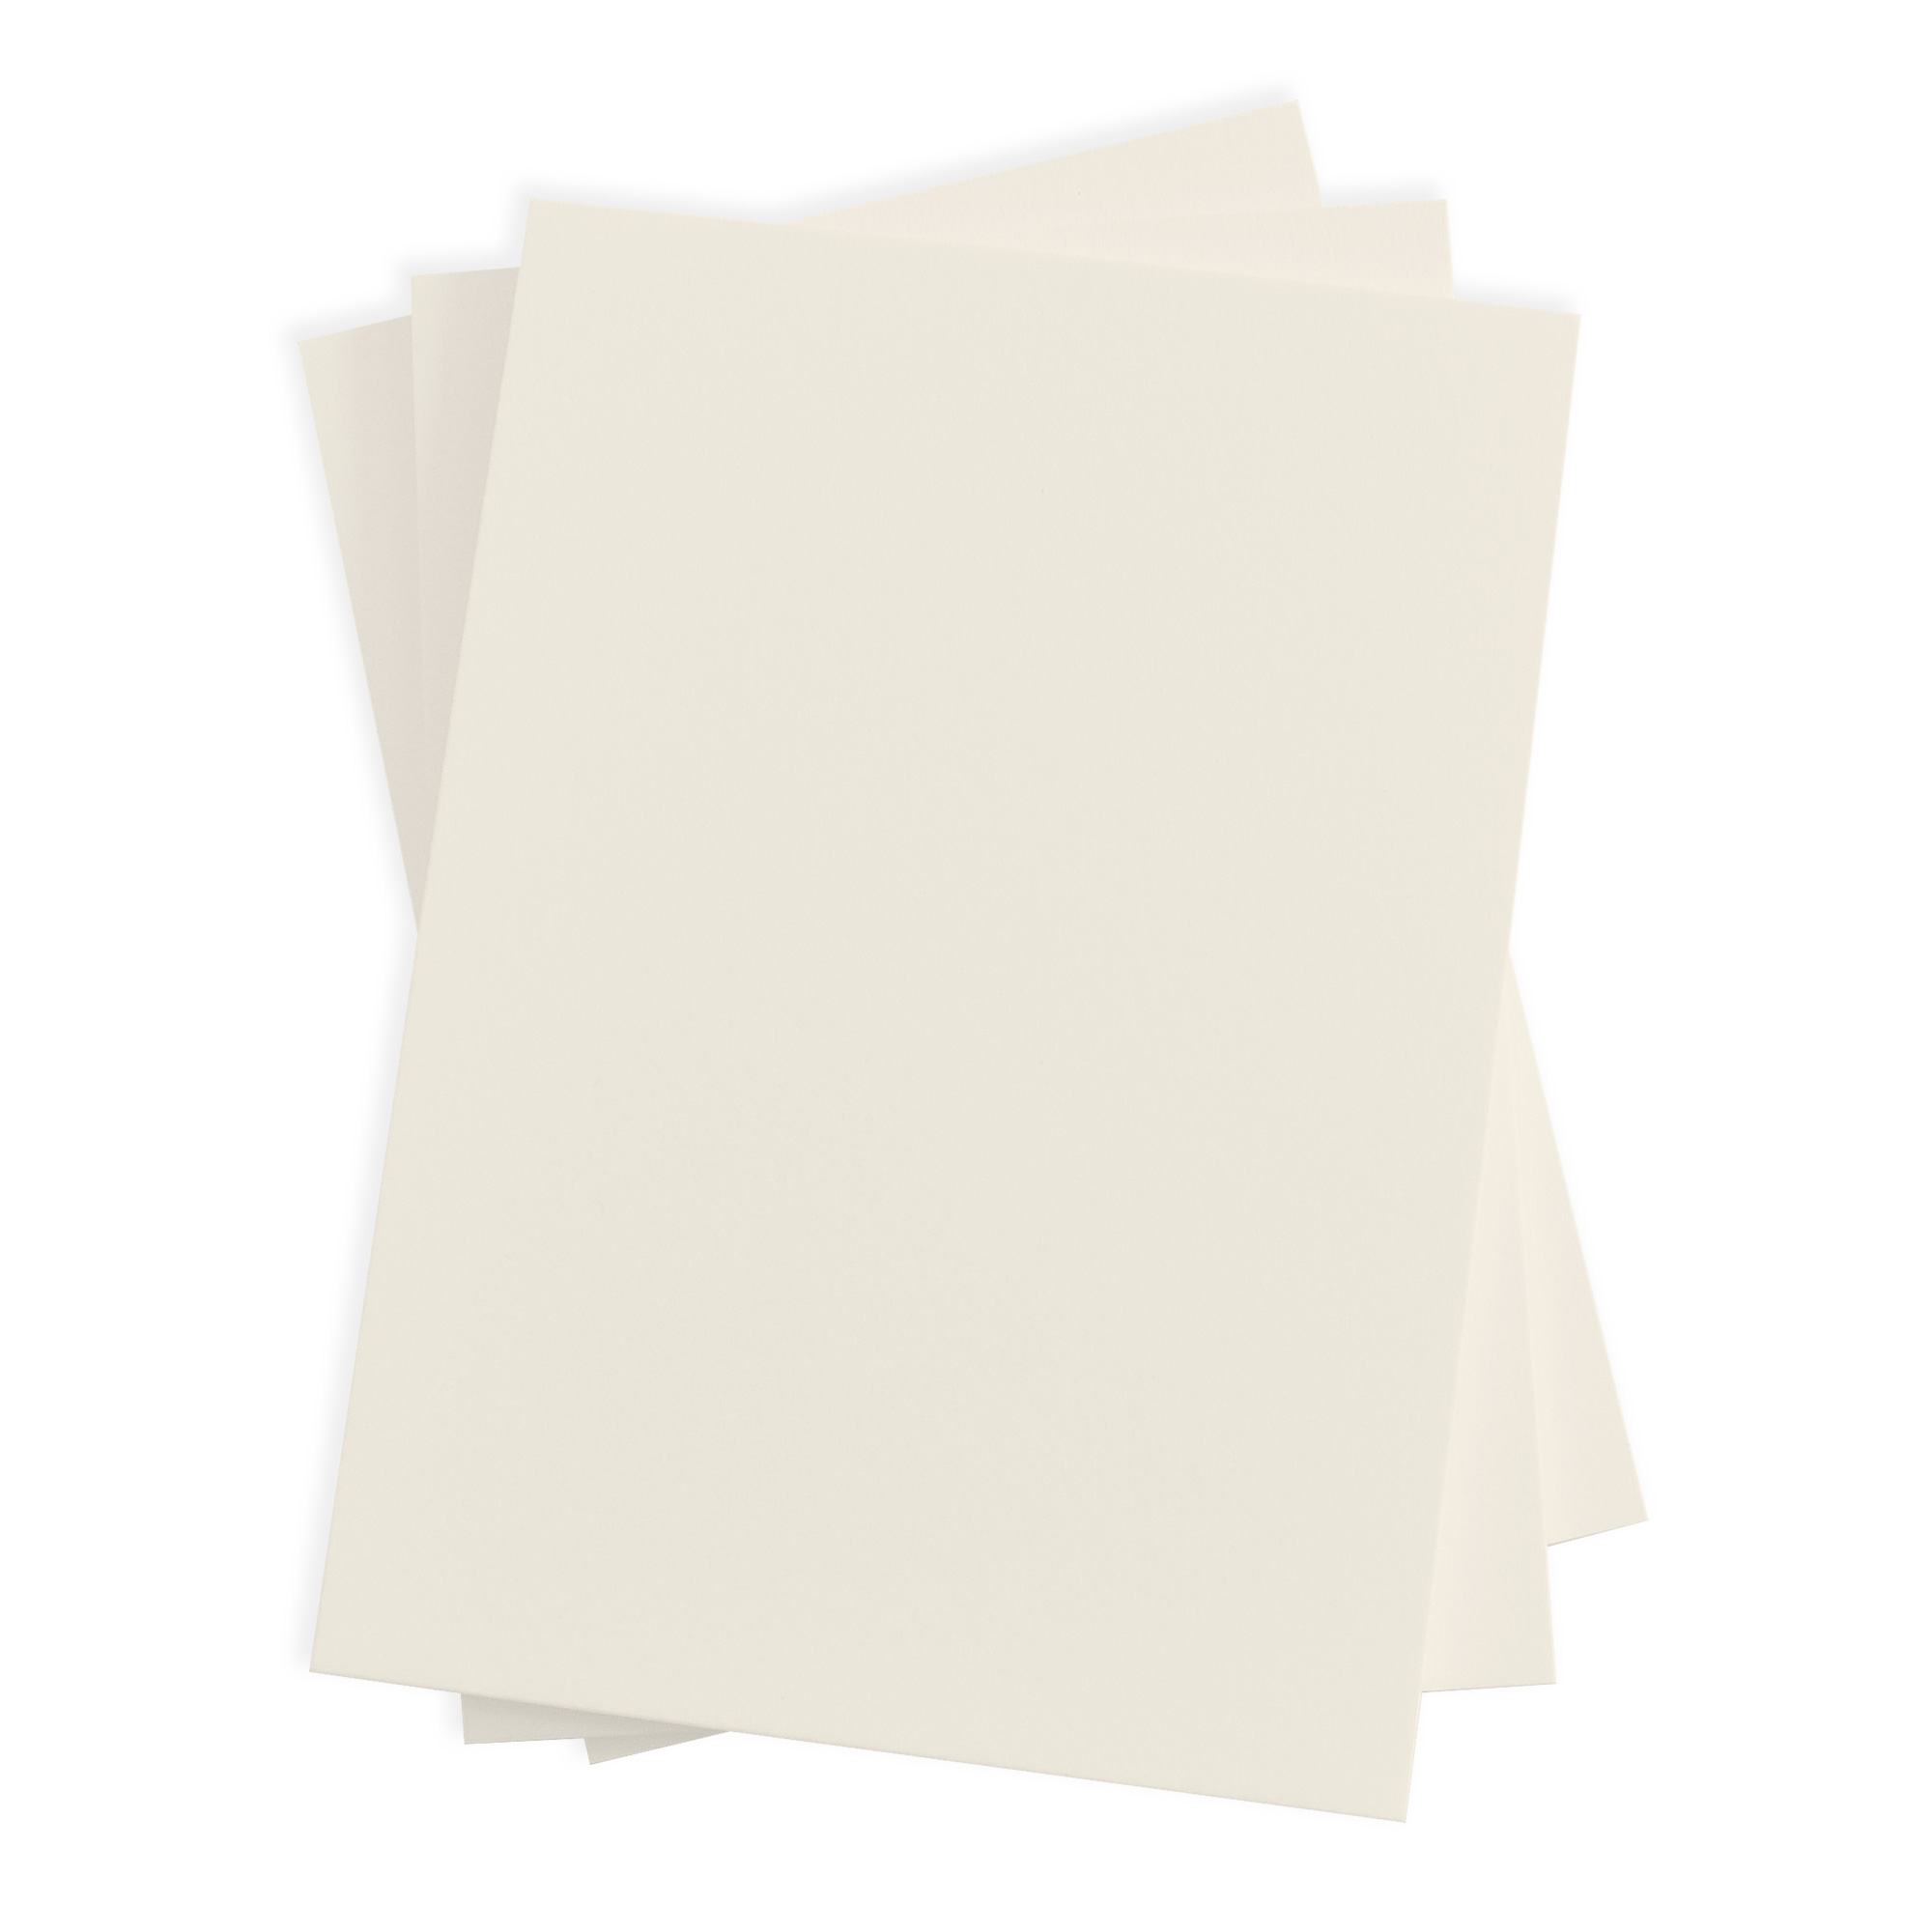 Plain Blank Wedding Invitation - Ecru (50 Pack)